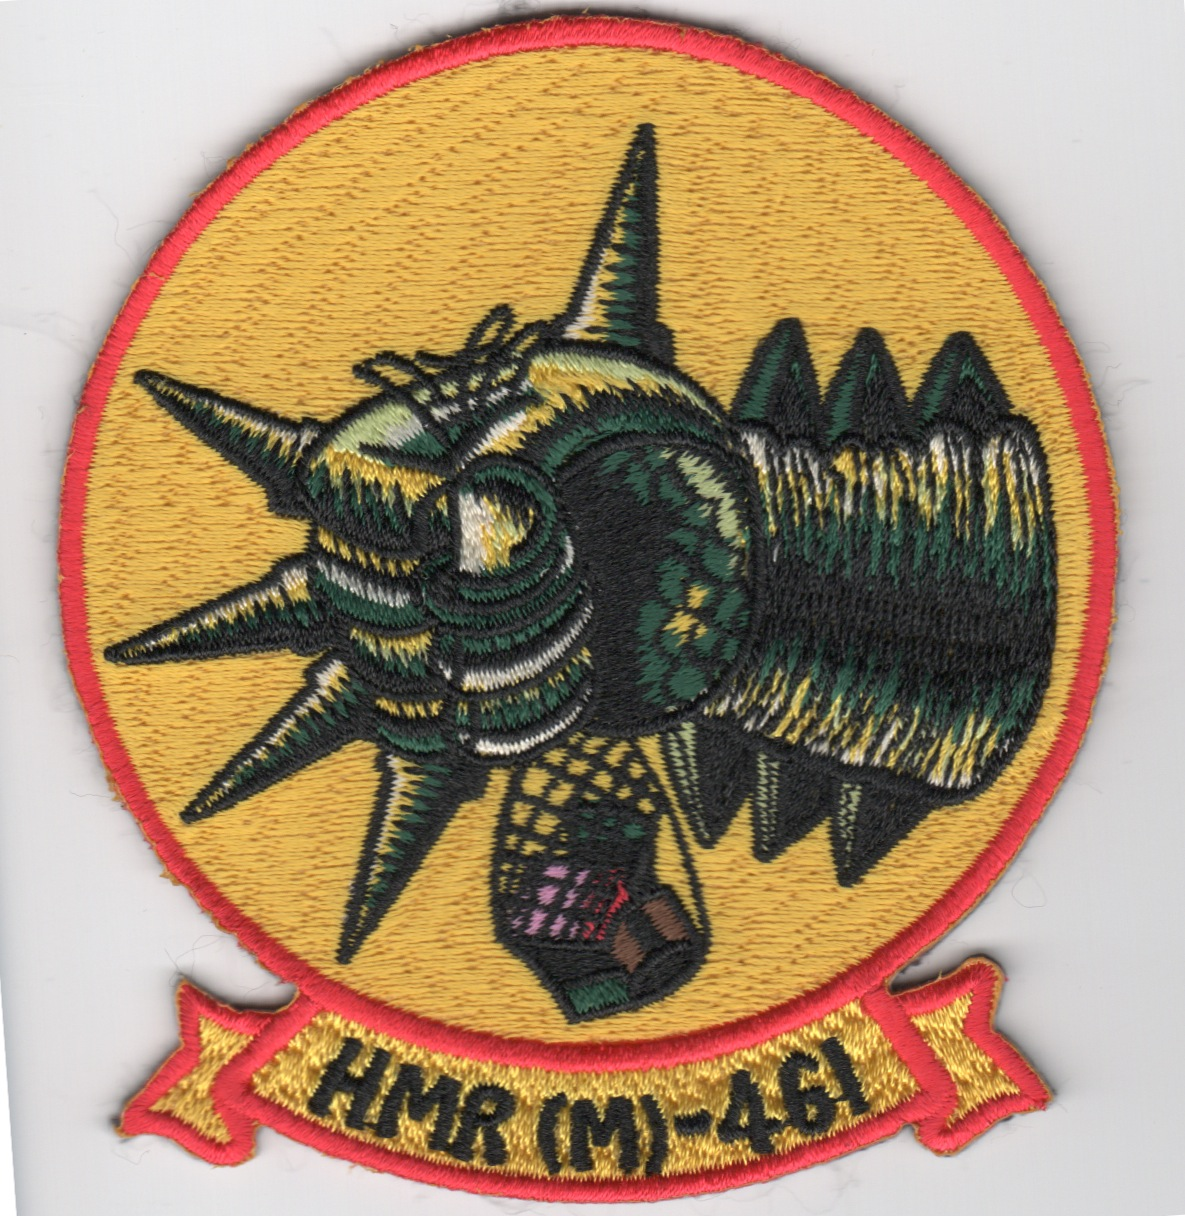 HMH-461 'Fist' (Yellow/Historical)